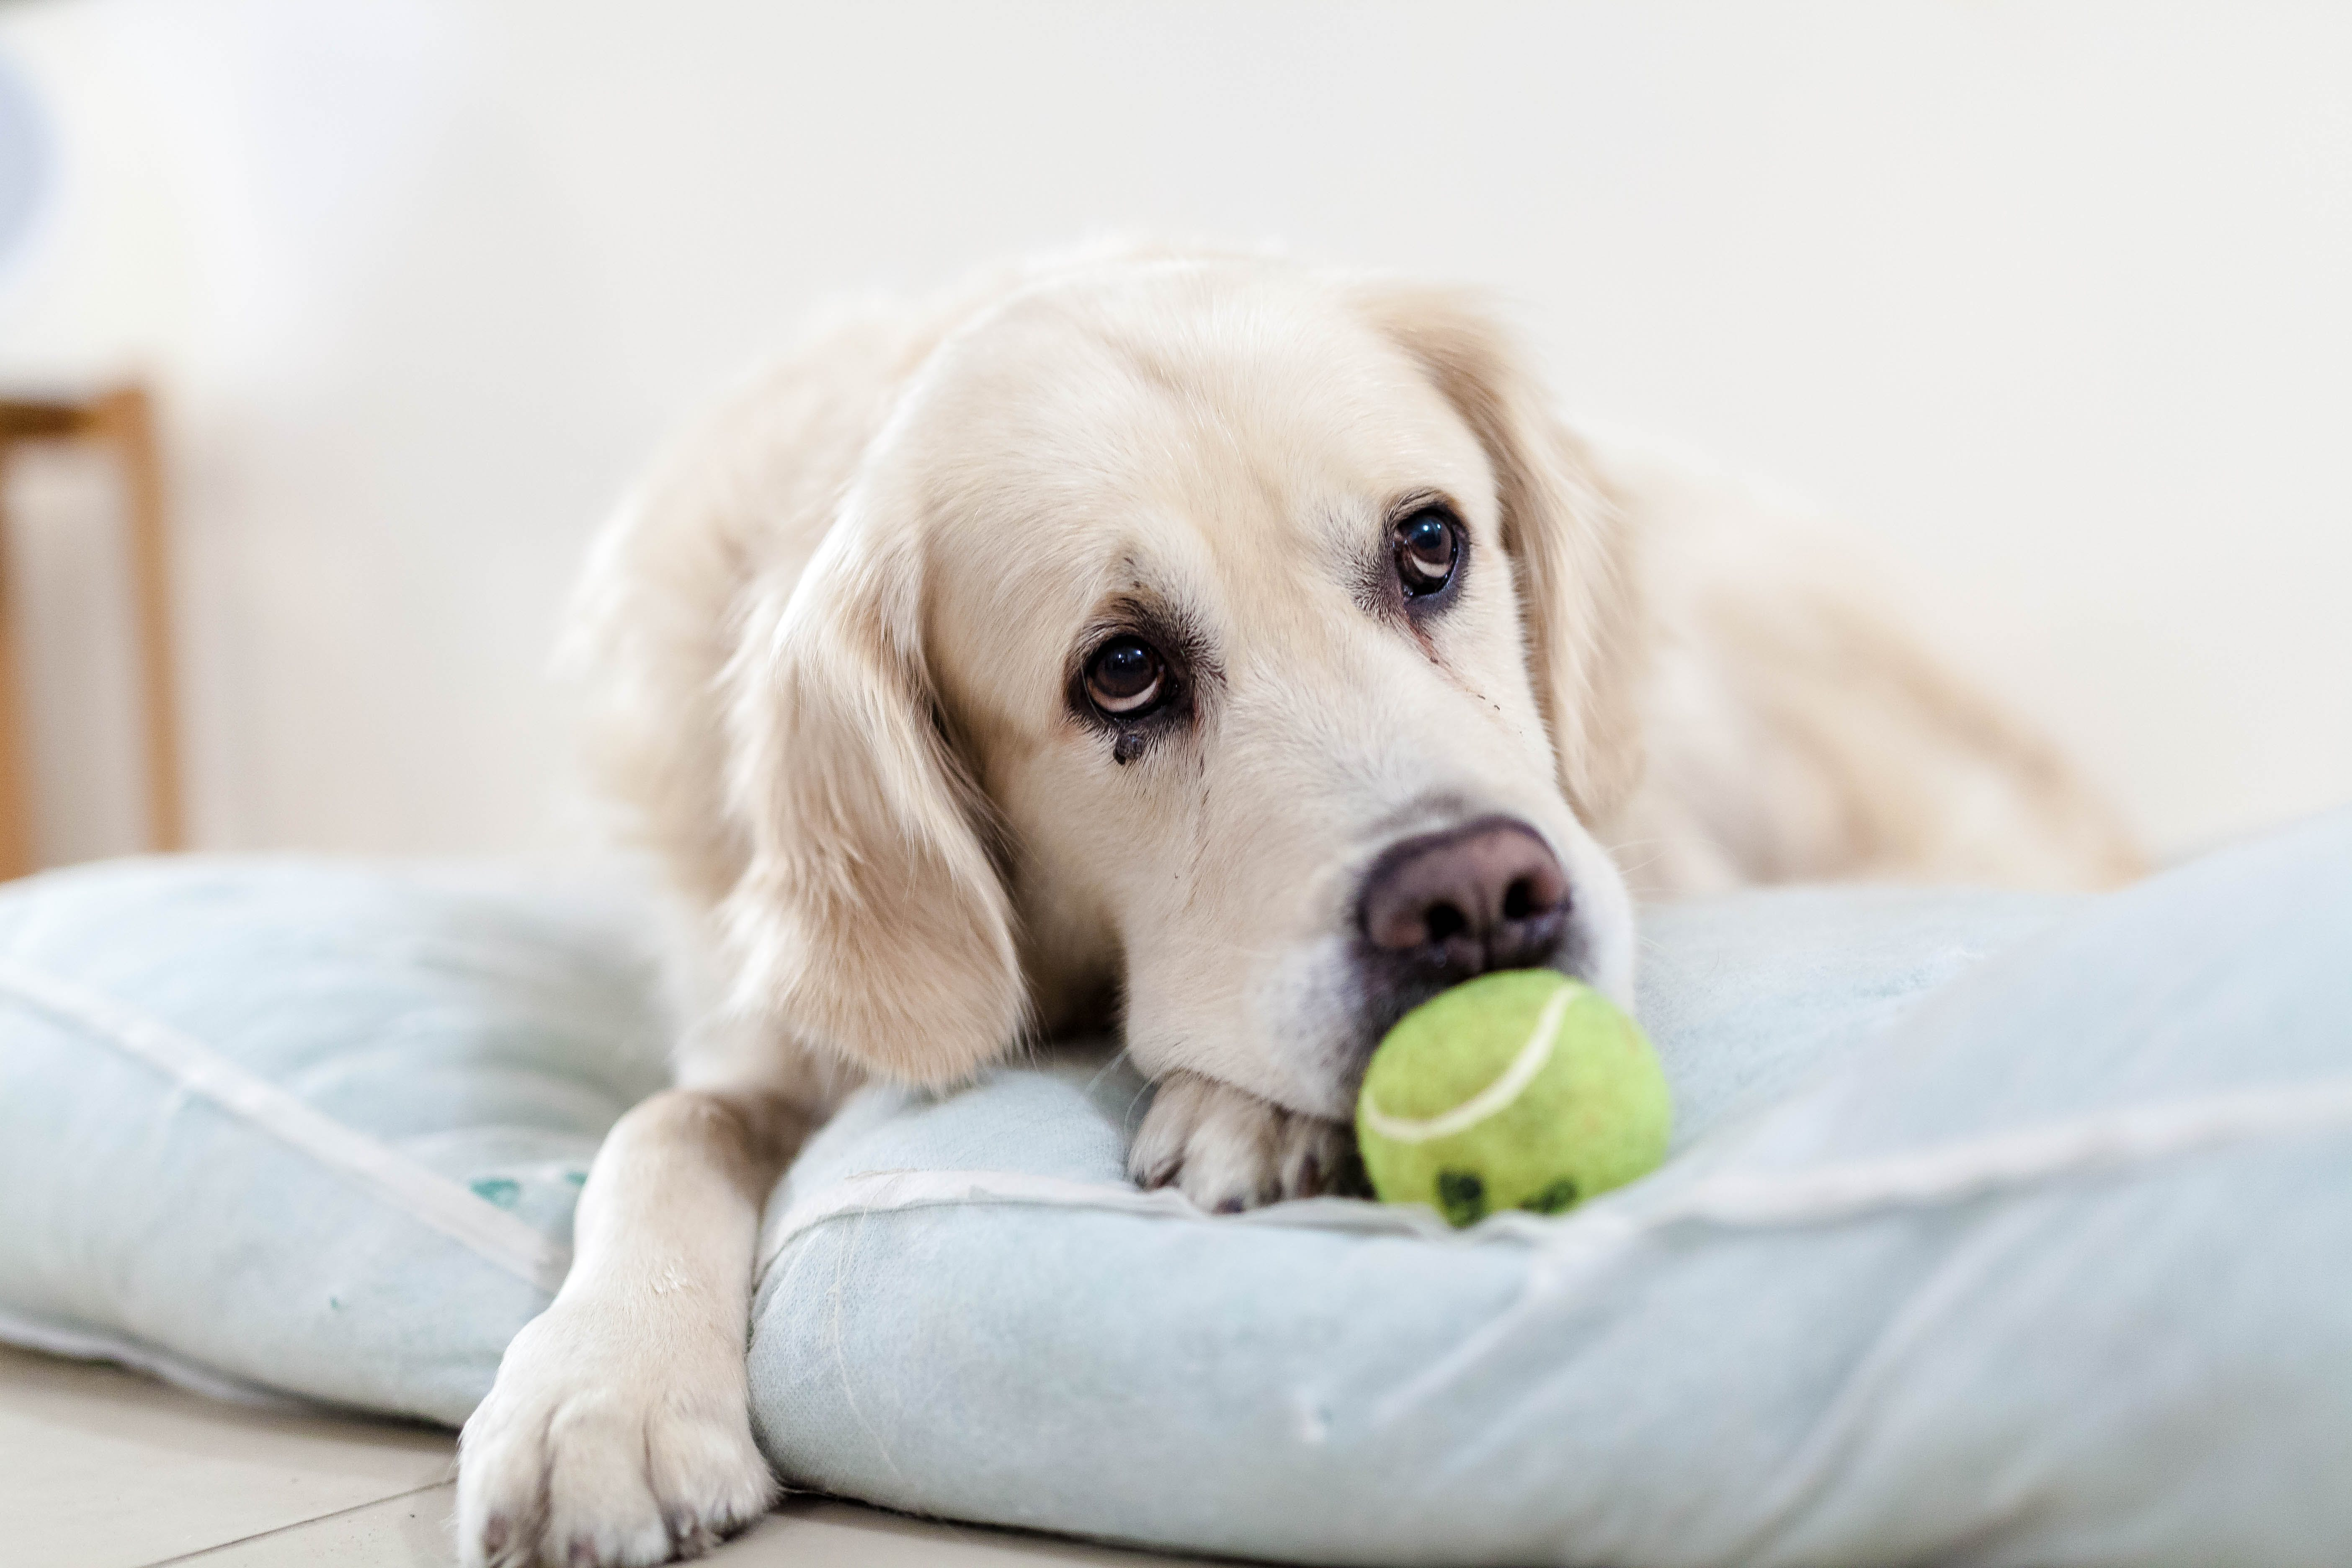 Yellow Tennis Ball in Front of the White Short Coated Dog